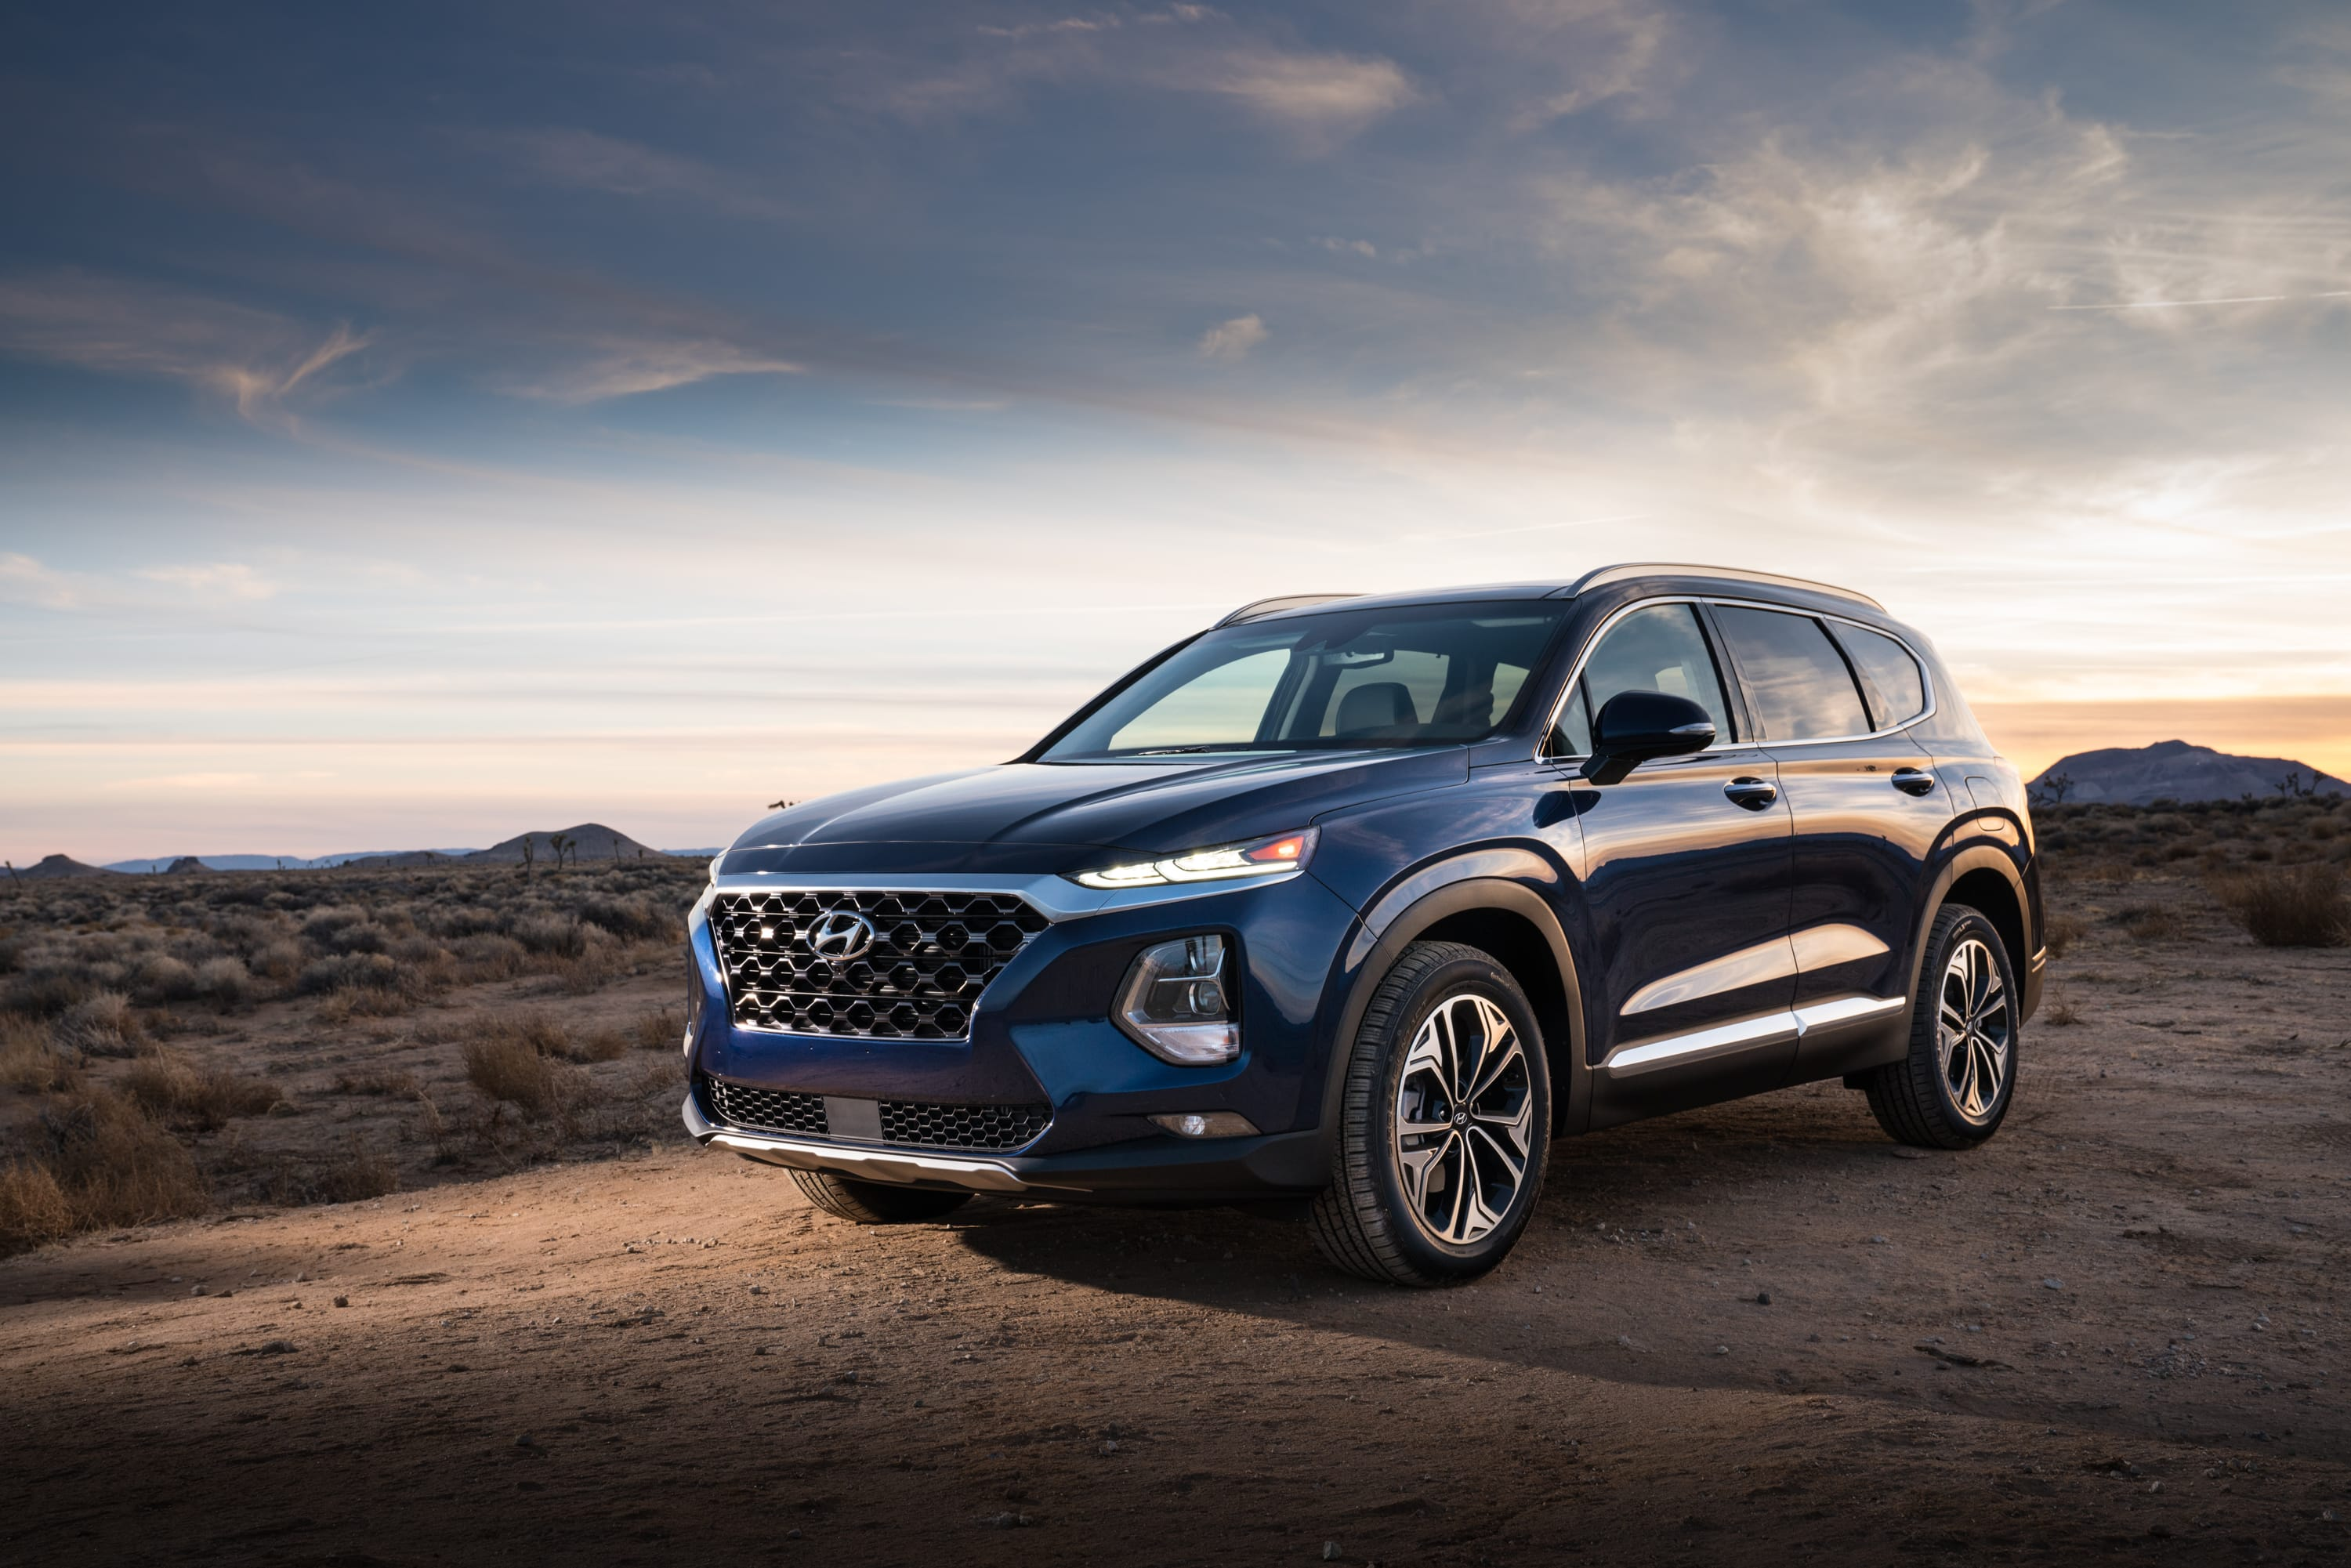 Hyundai's All-New 2019 Santa Fe Awarded 'Redesign of the Year' by ALG